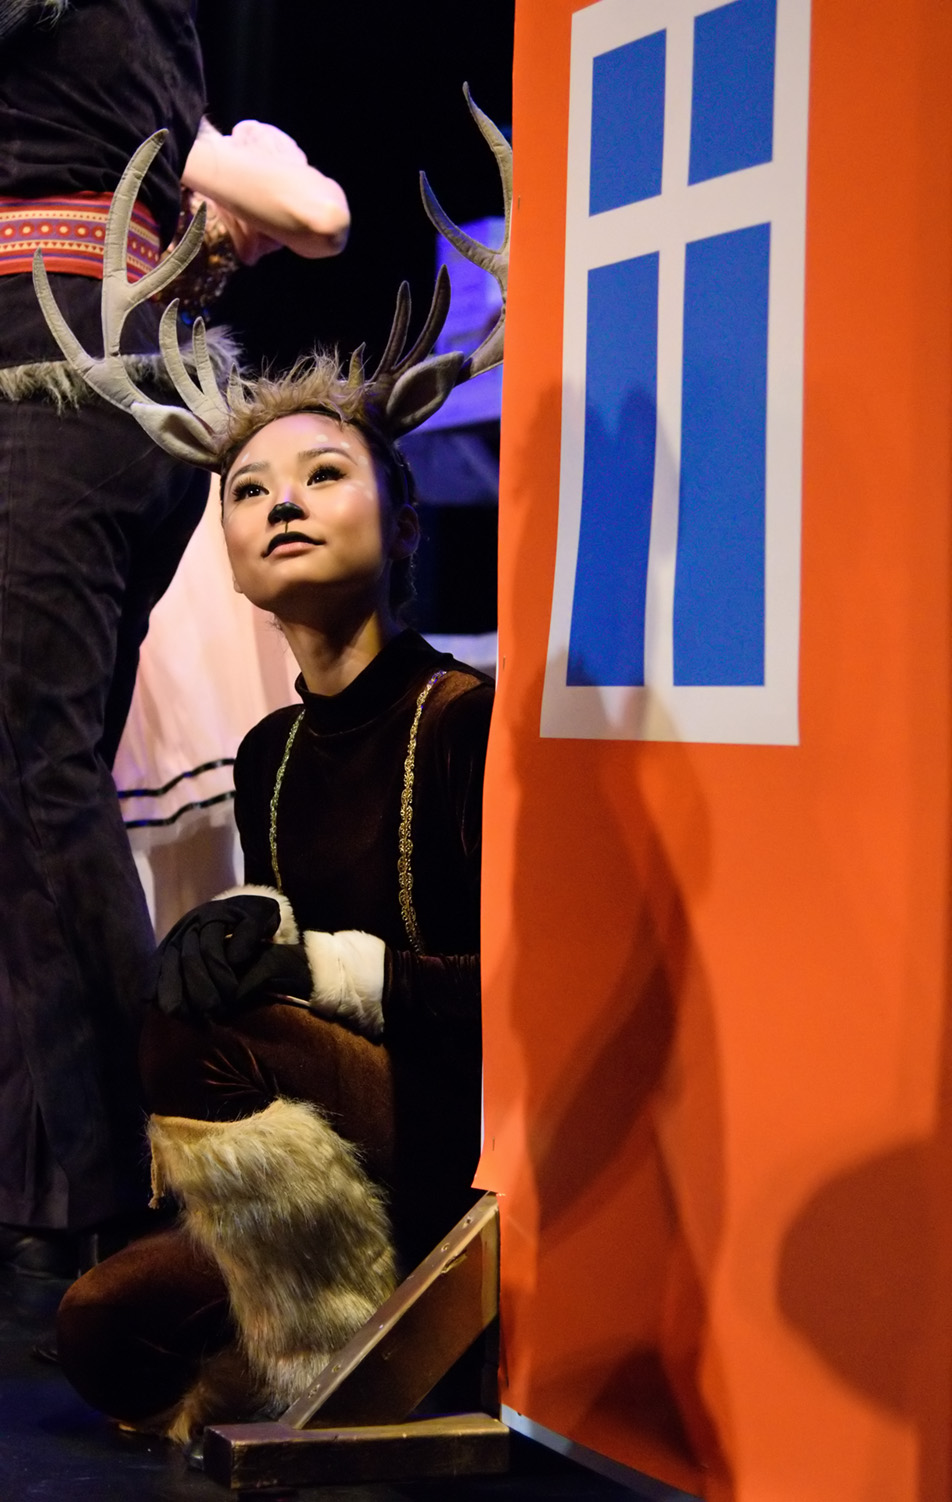 Not Rudolph: Stephanie Rha plays the reindeer Sven in the ballet performance 'Frozen' presented by Absolute Dance at the Wright Theatre on Mount Royal University campus in Calgary on Sunday, Nov. 29, 2015. (Photo by Brooke Hovey/The Press)